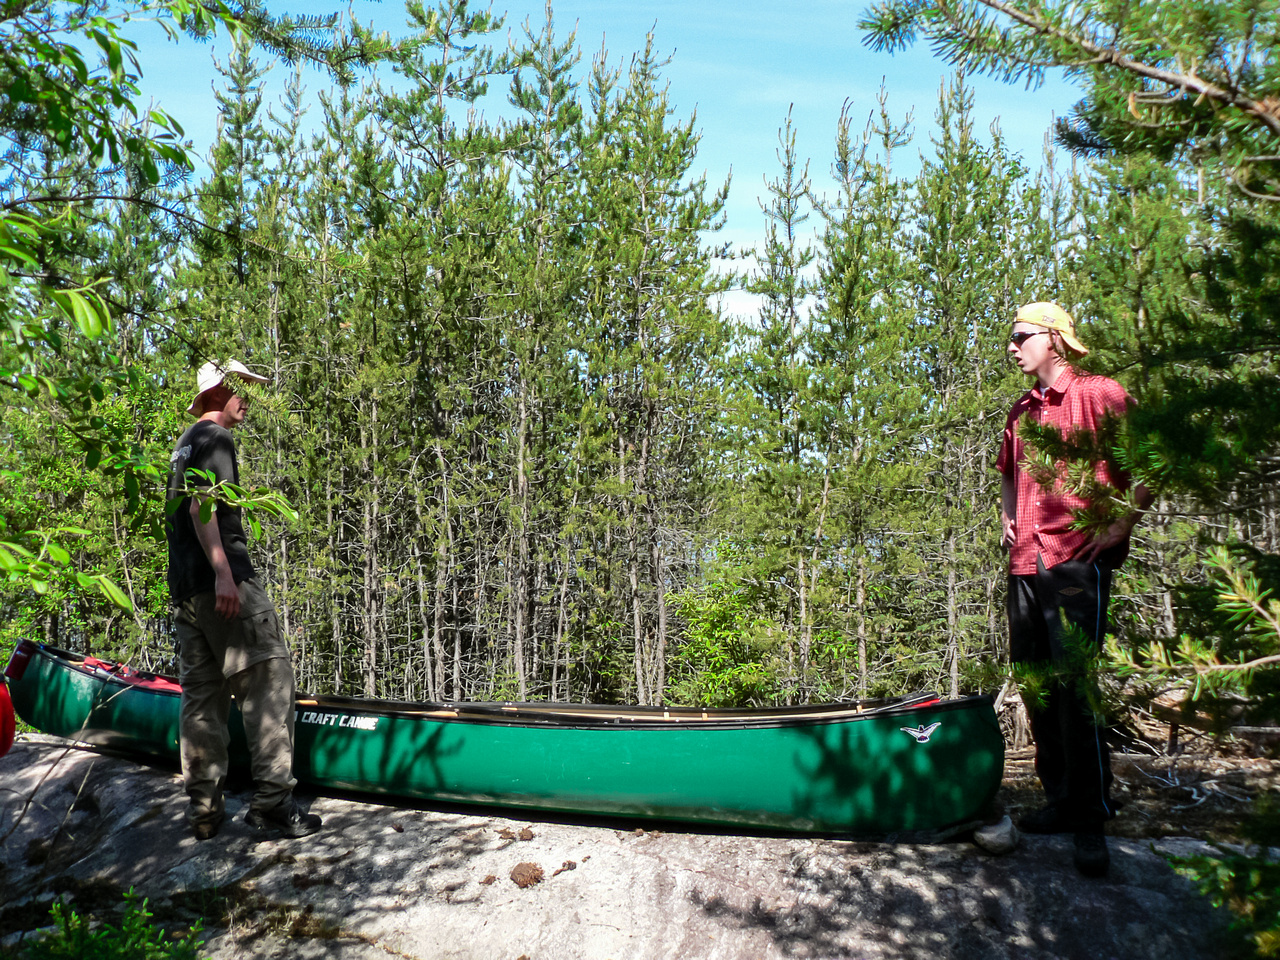 Typical WCPP portage includes forest, bog and rocks. This is the 300m portage into the Haggart River.